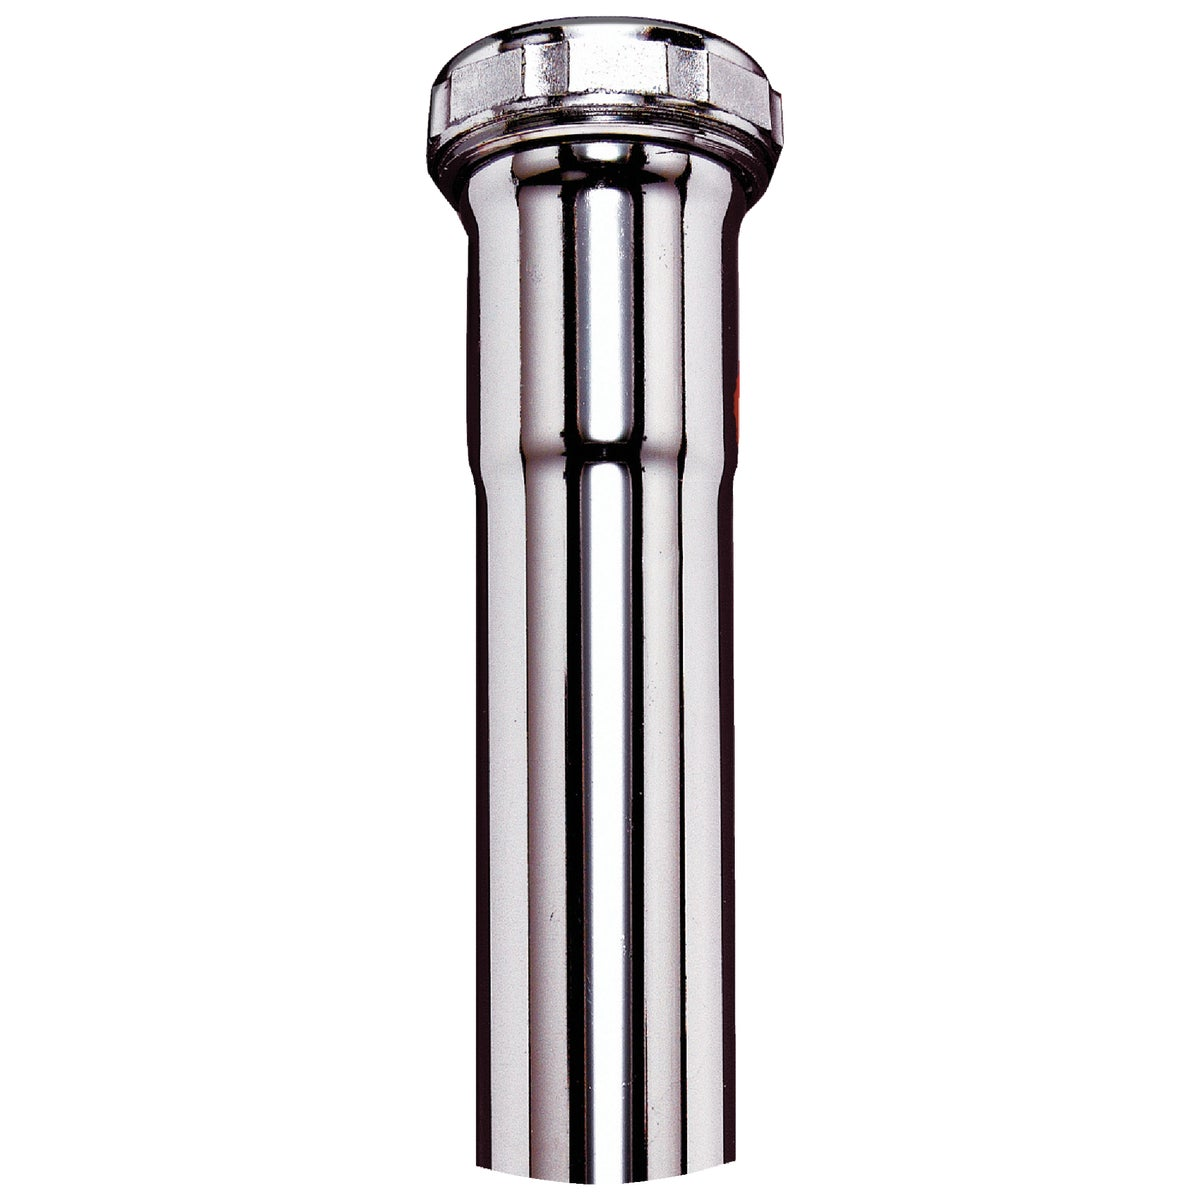 1-1/4X6 22GA SJ EXT TUBE - 417597 by Plumb Pak/keeney Mfg